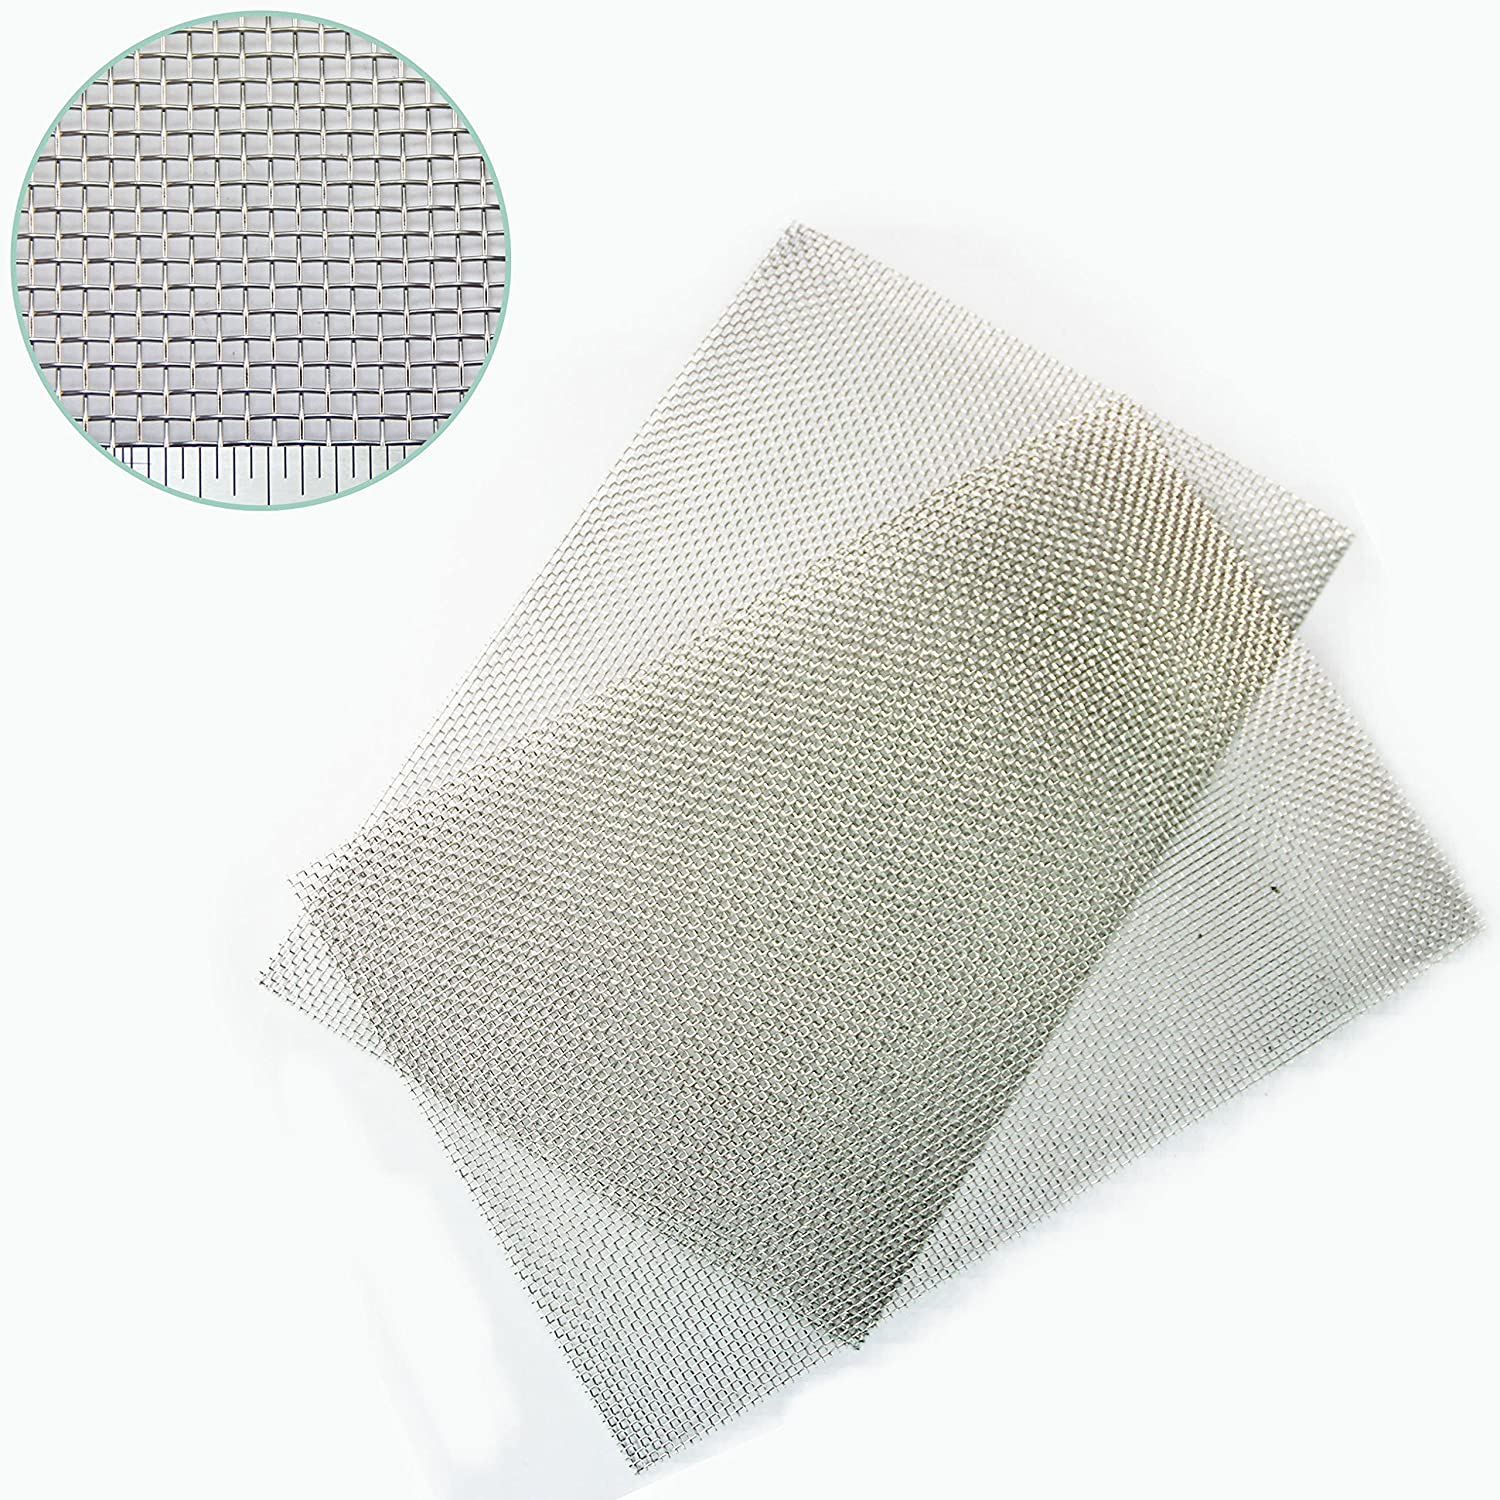 The Mesh Company's Heavy Duty (2mm) Rodent Mesh - Stainless Steel Woven Mesh -Pack of 2 A4 210 x 300mm) - Great for Airbricks - Fast + Free Shipping